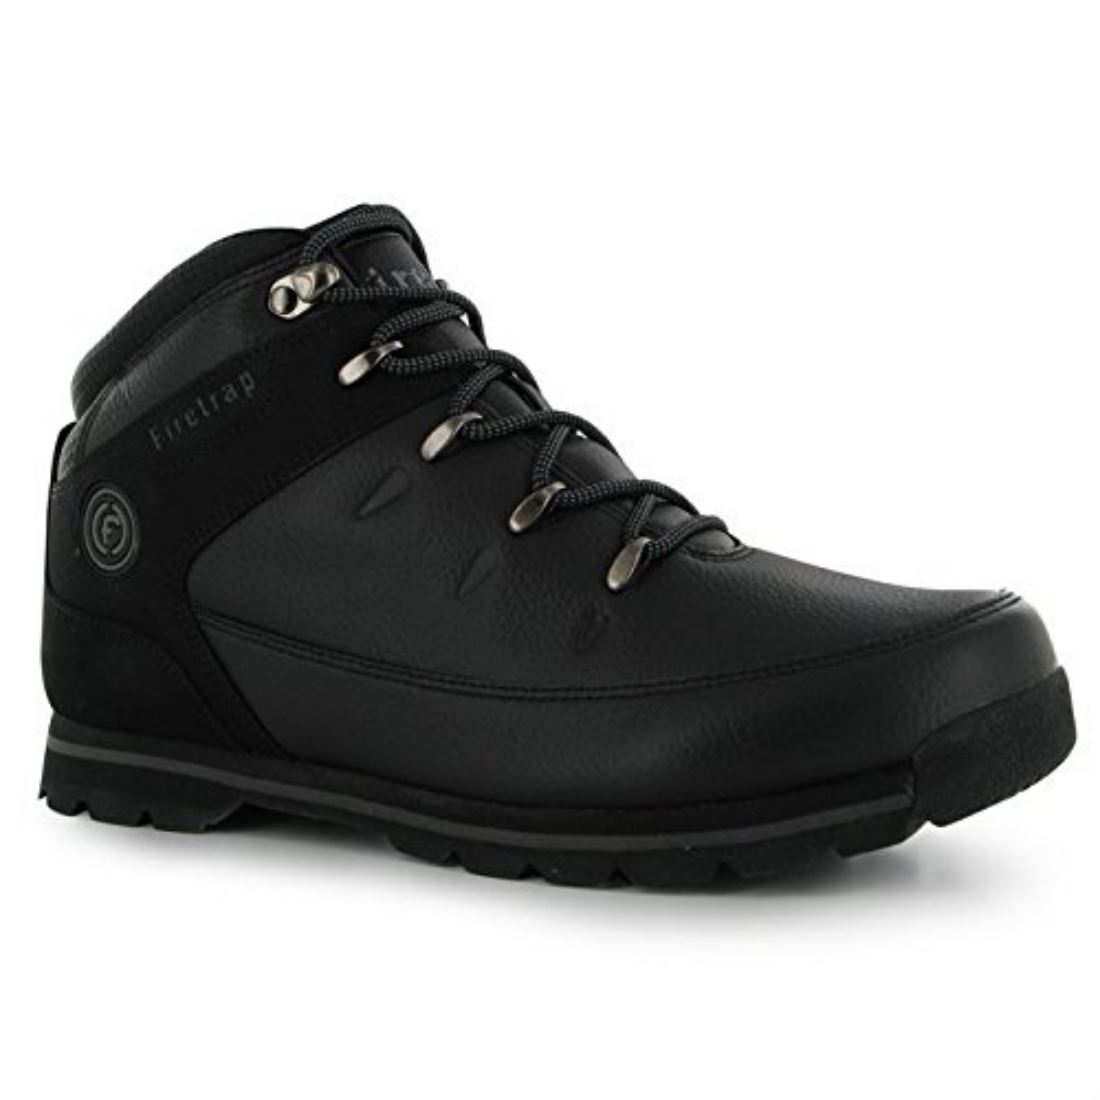 Firetrap Mens Shoes Size